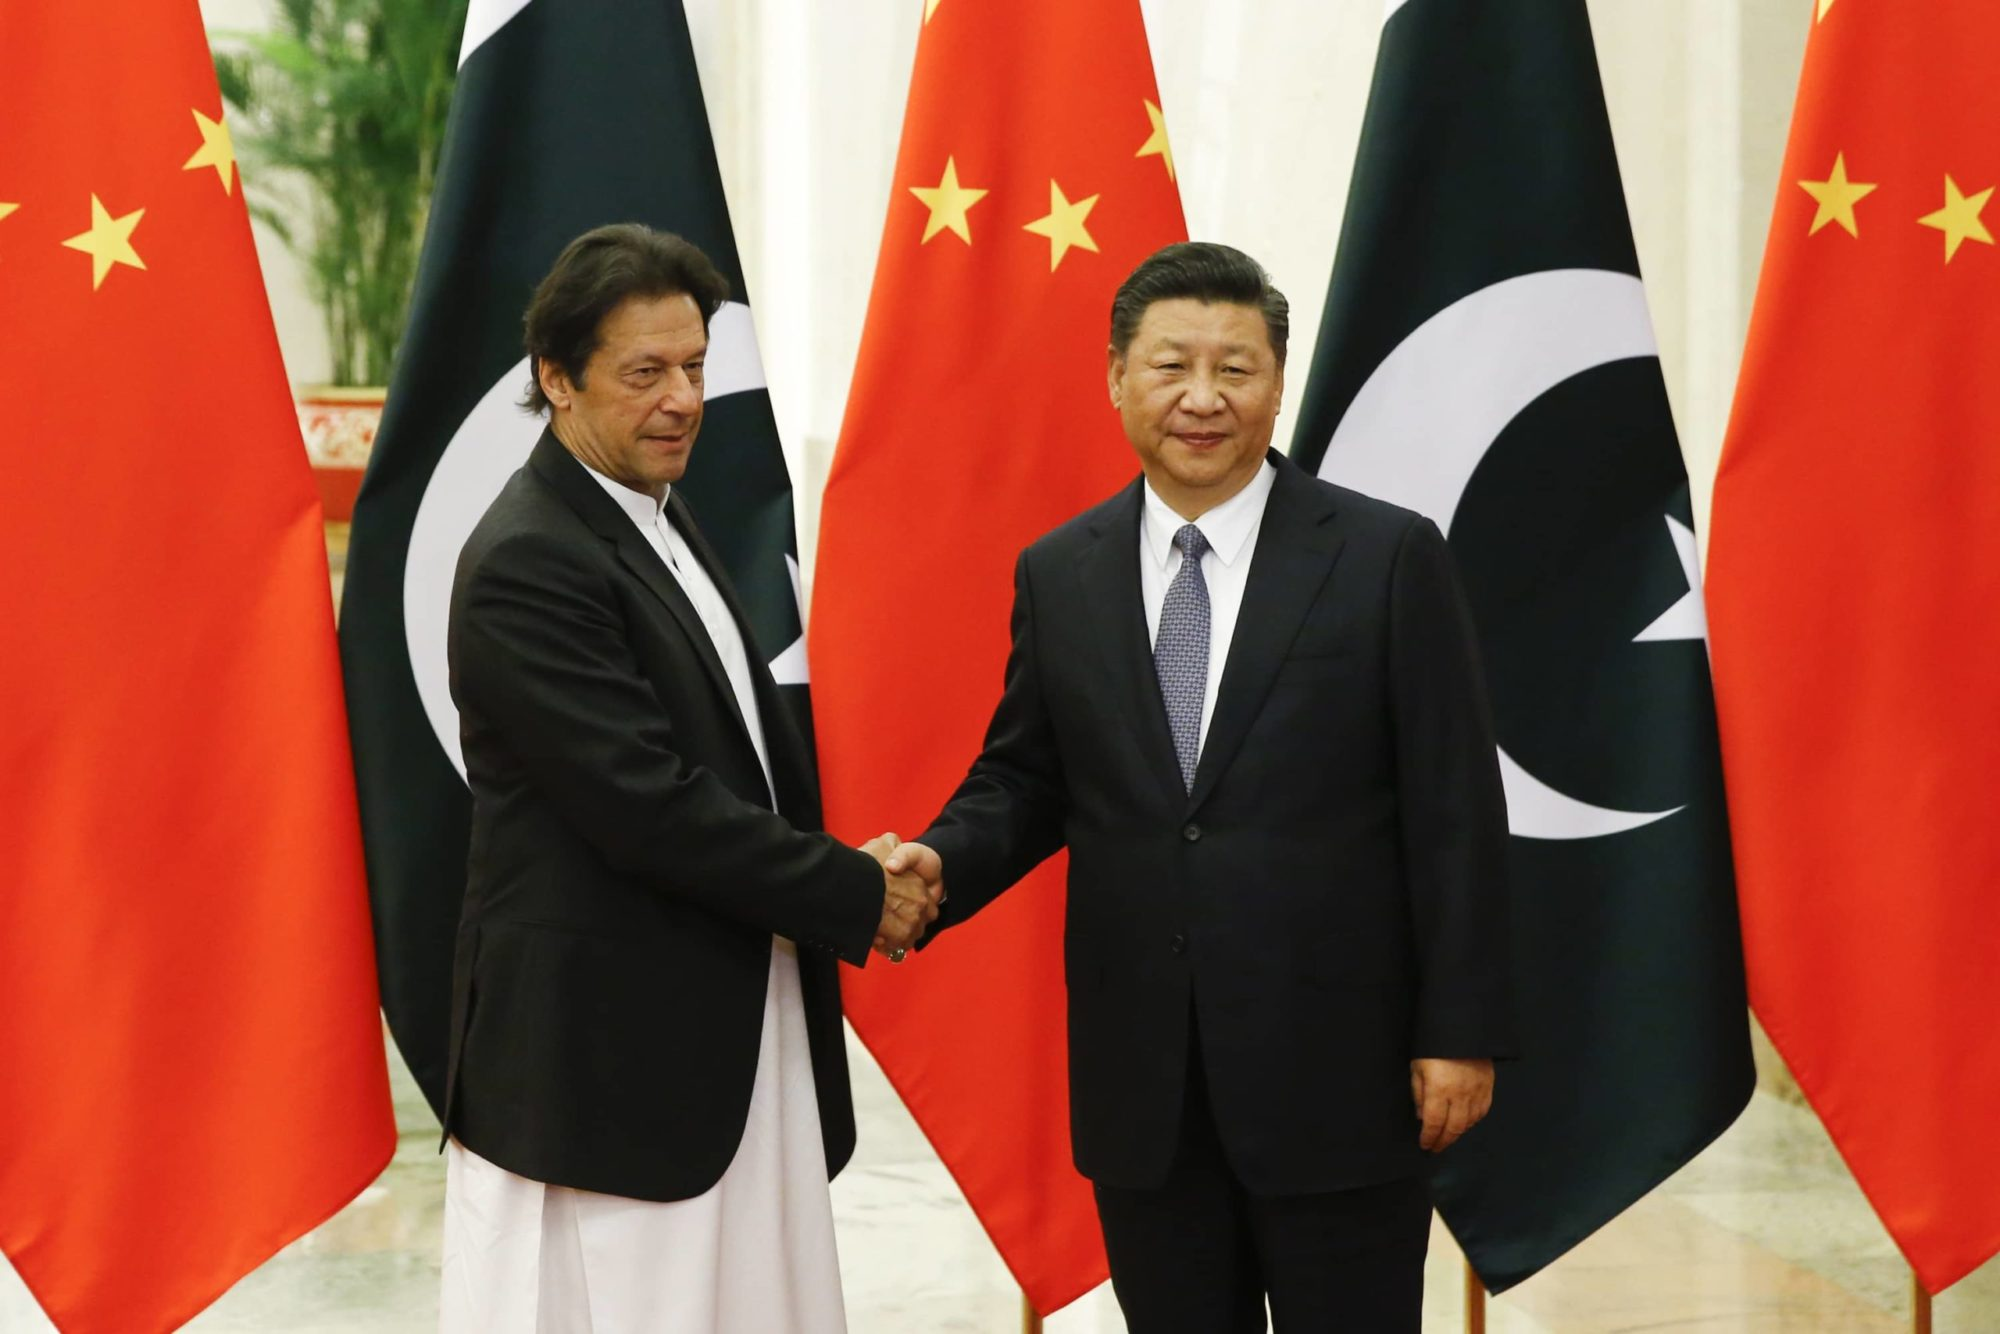 President Xi Jinping shakes hands with Prime Minister Imran Khan.